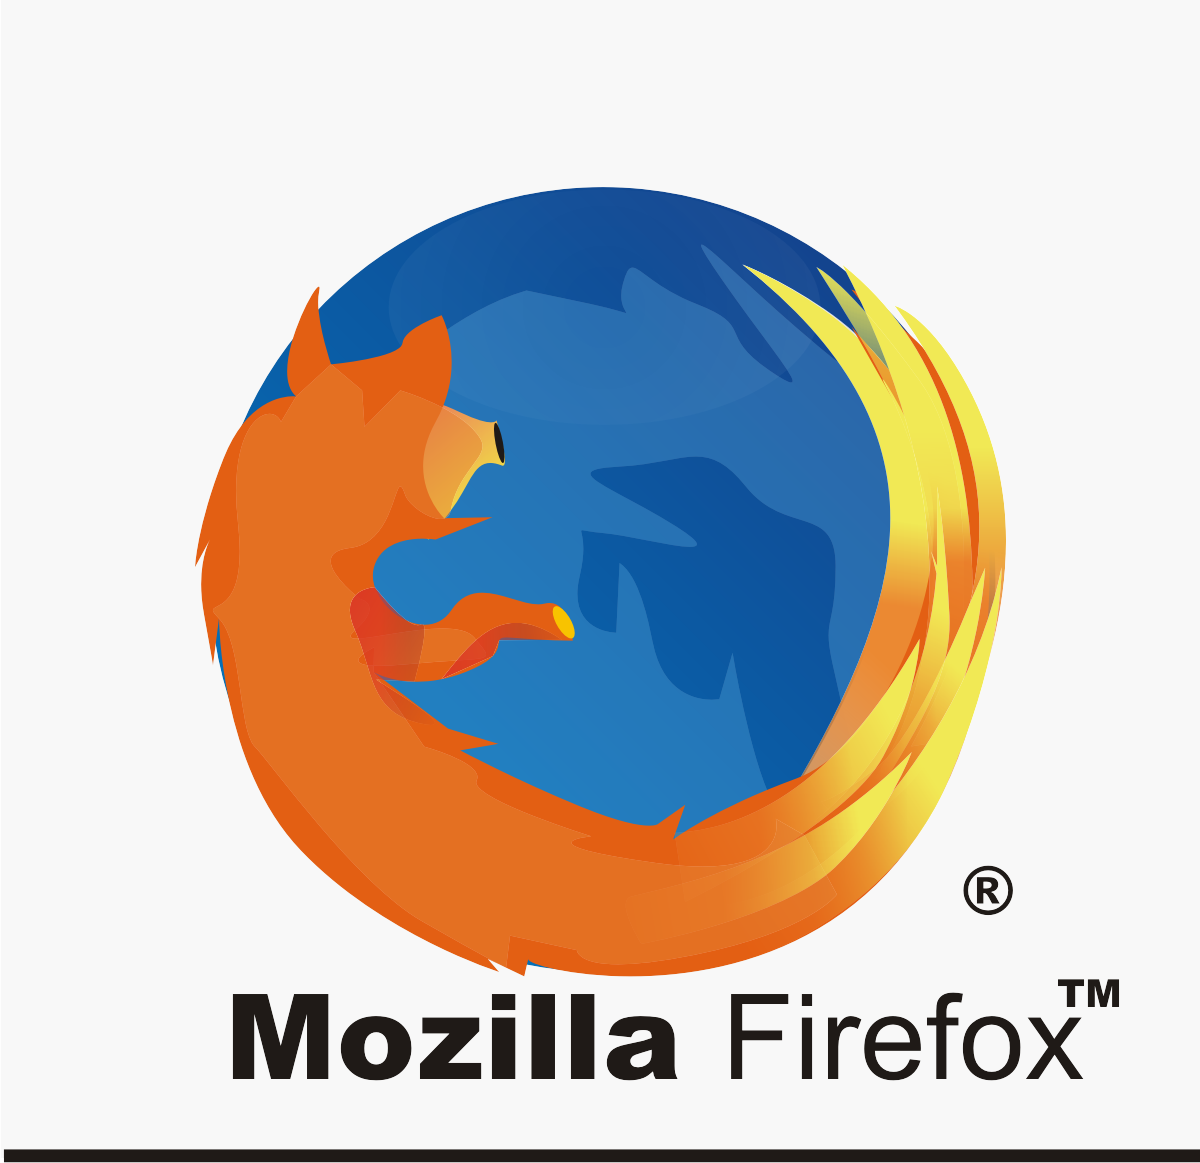 My TUTORIAL Arena: LOGOGRAPHY: DESIGN FIREFOX LOGO WITH CORELDRAW